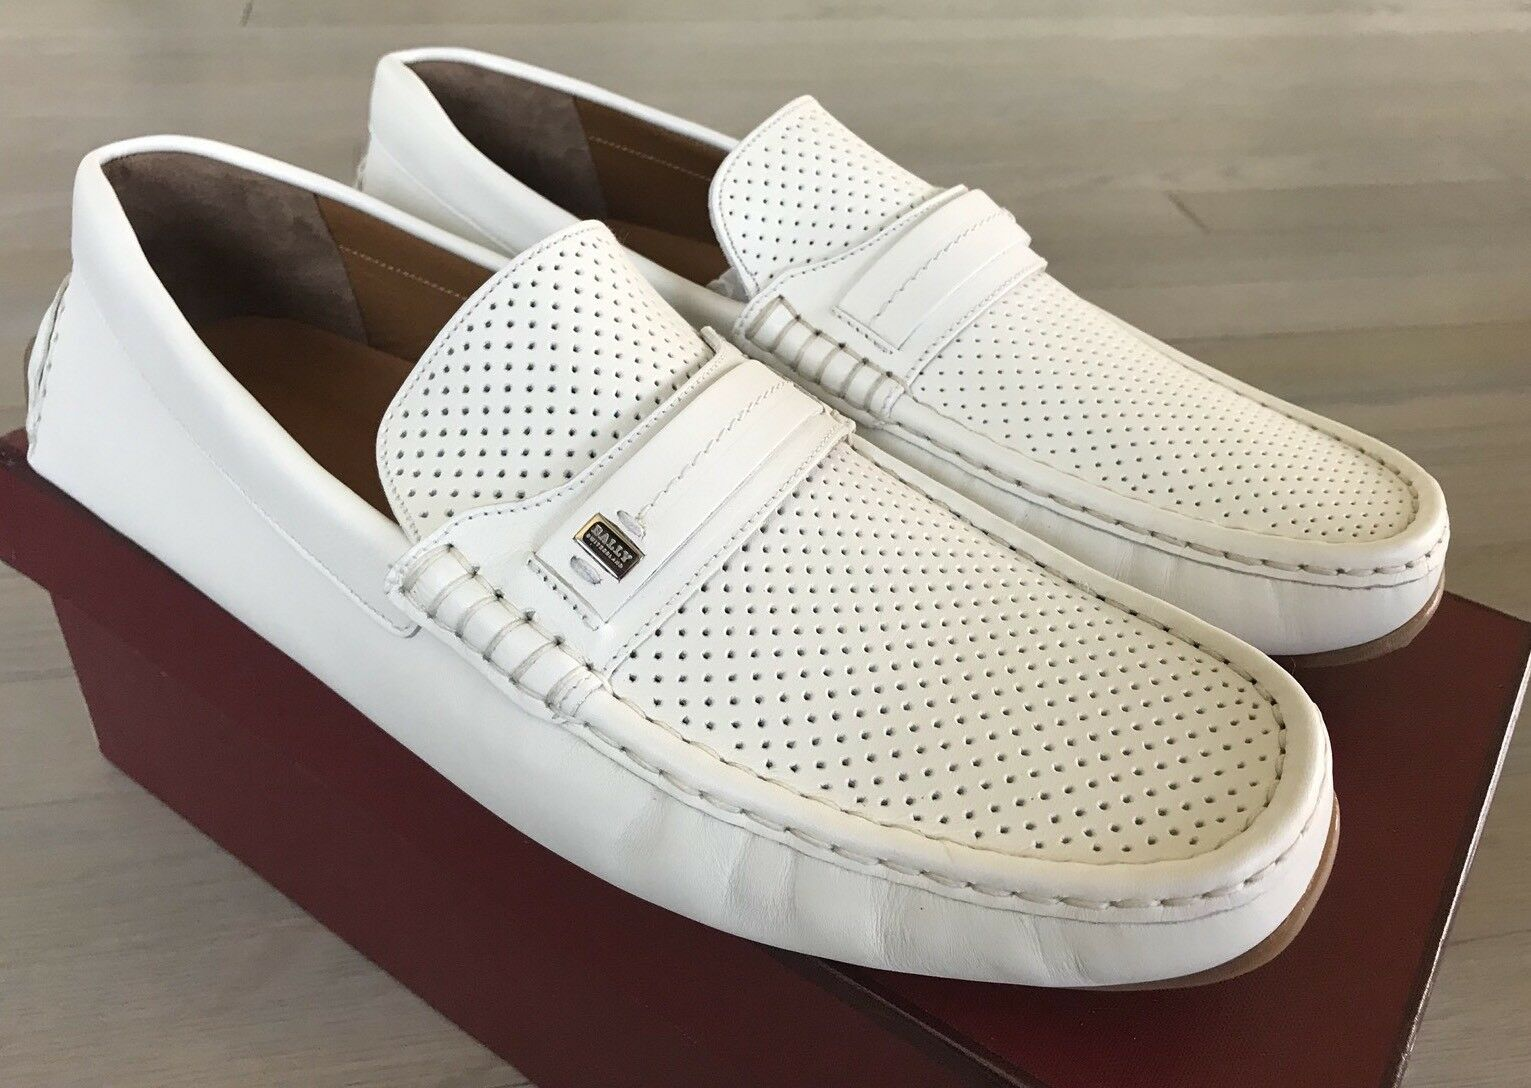 600  Bally Pryce White Perforated Pelle Driver Size US 10.5 Made in Italy